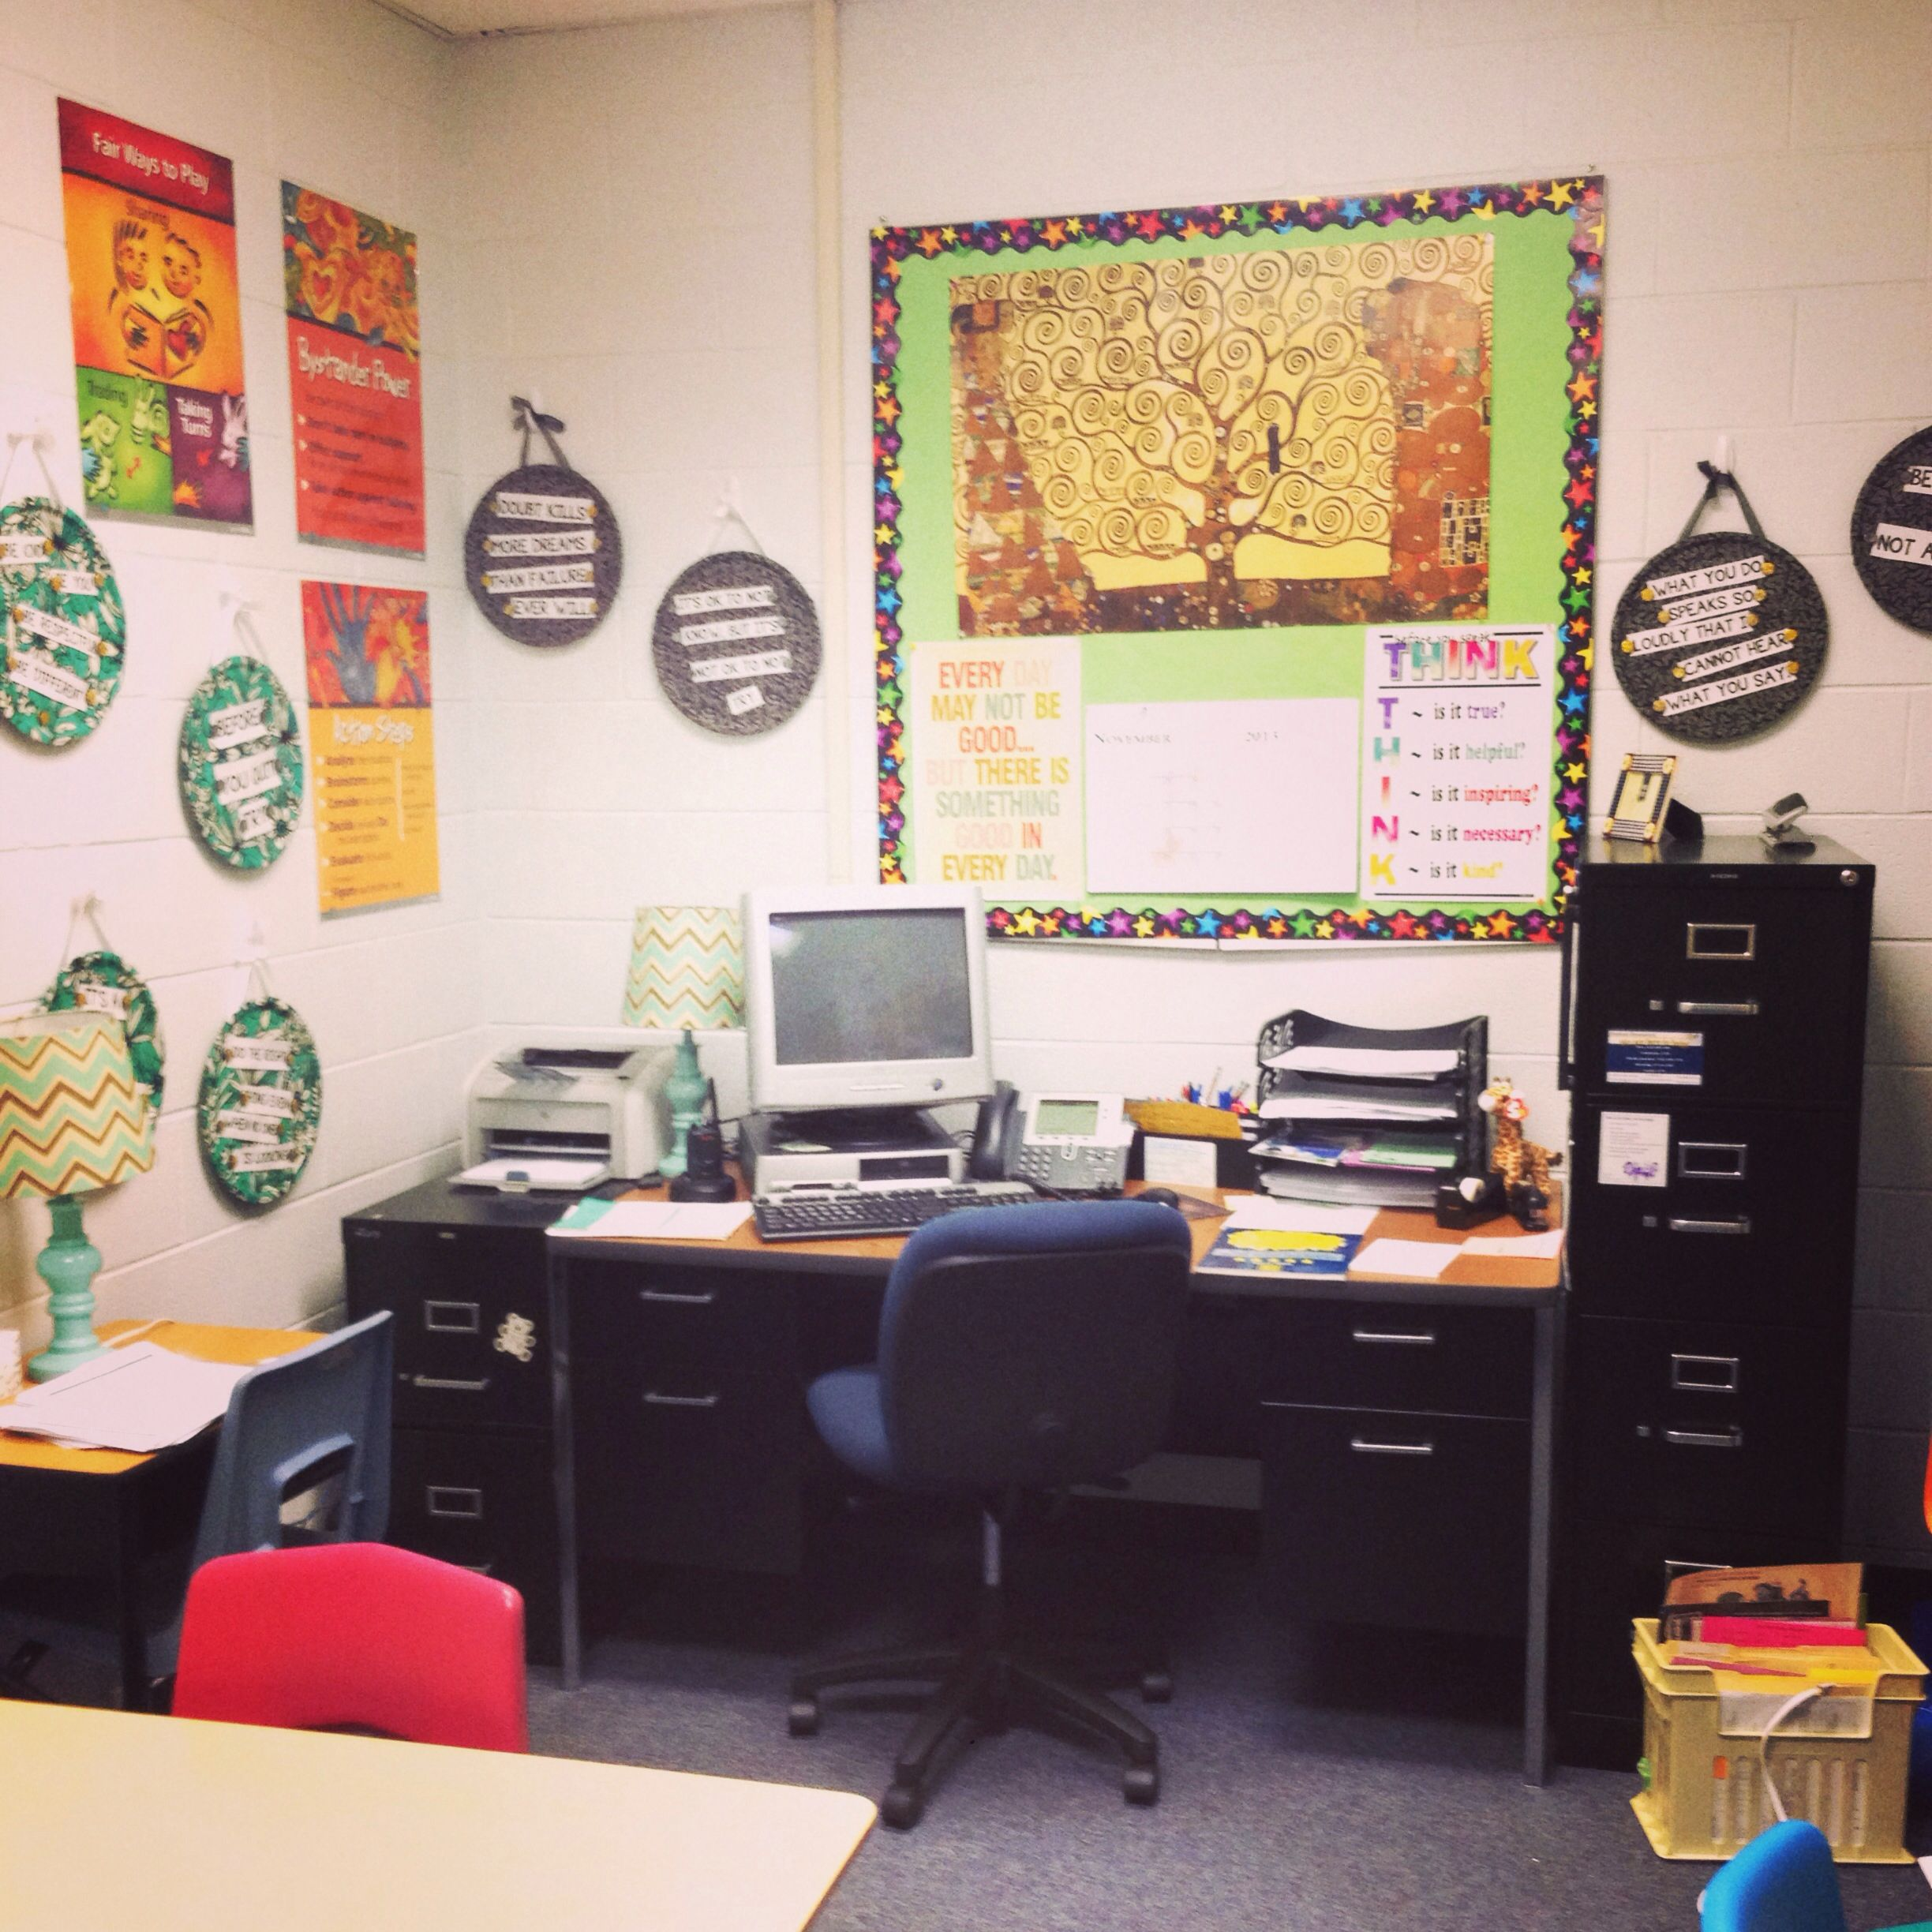 School office room images galleries Office room decoration ideas